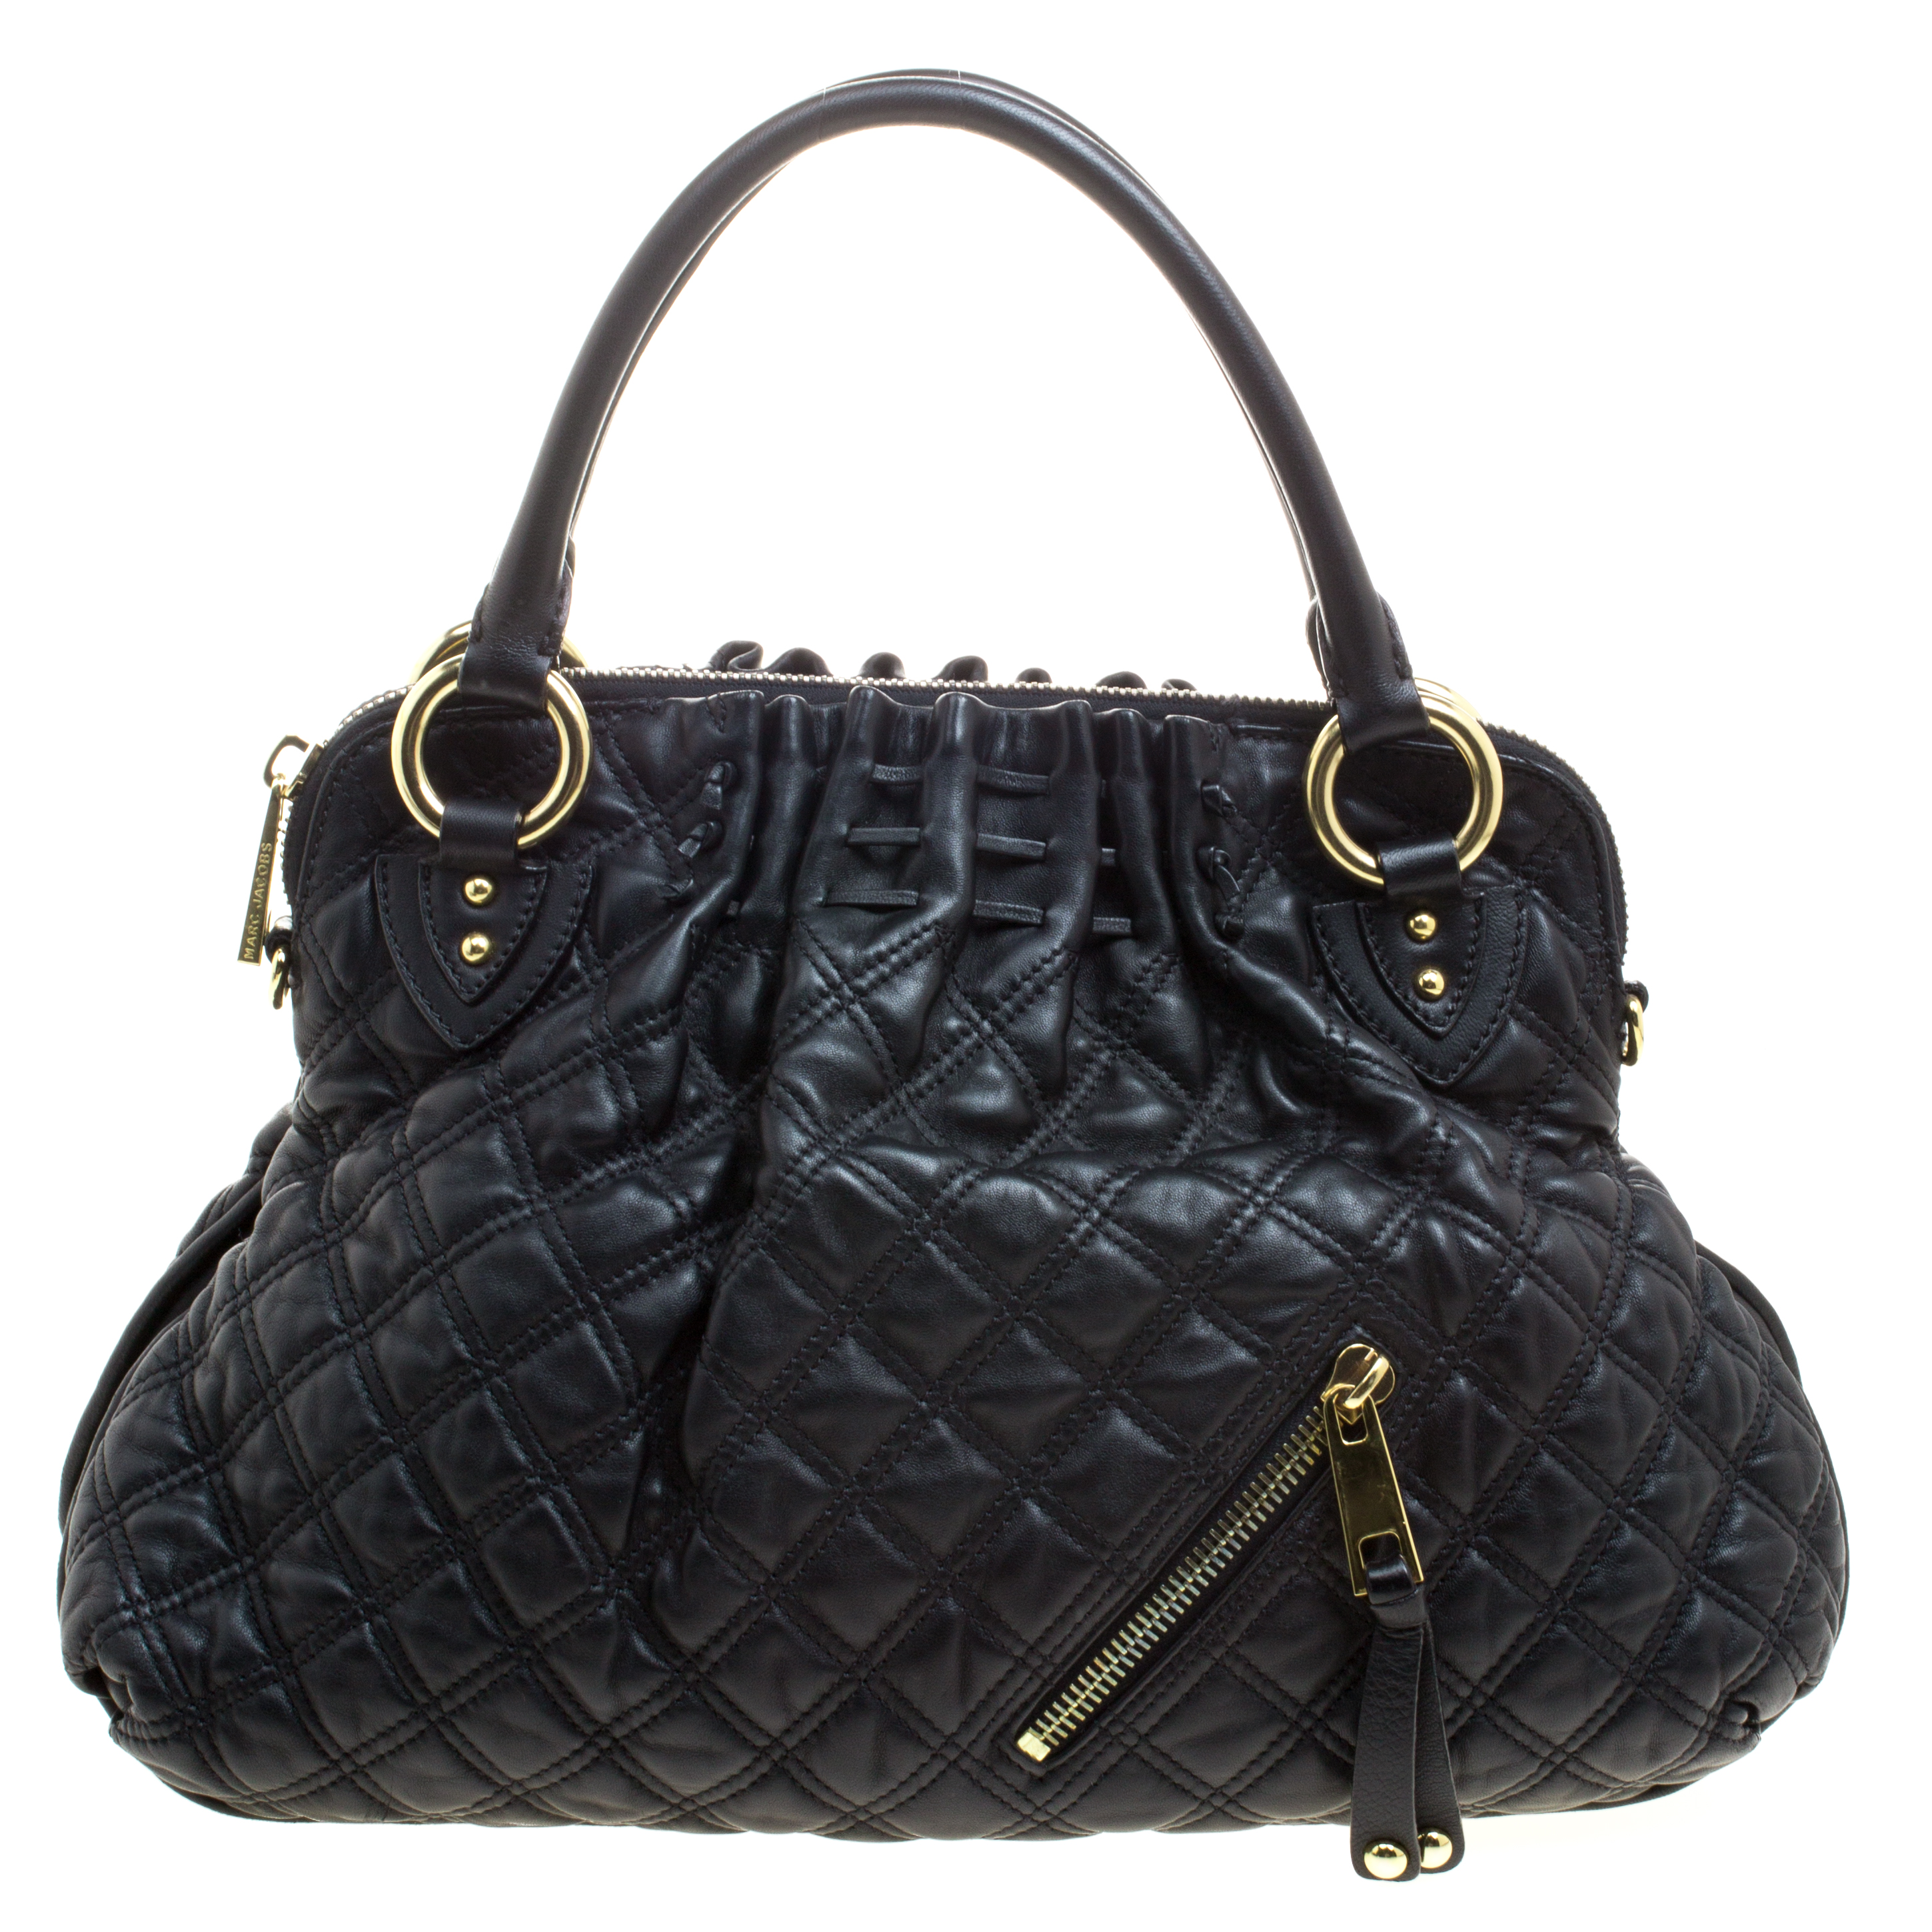 20effbff4a6ab Marc Jacobs Black Quilted Leather Cecilia Satchel 109864 At Best. Marc  Jacobs Mark Bag ...